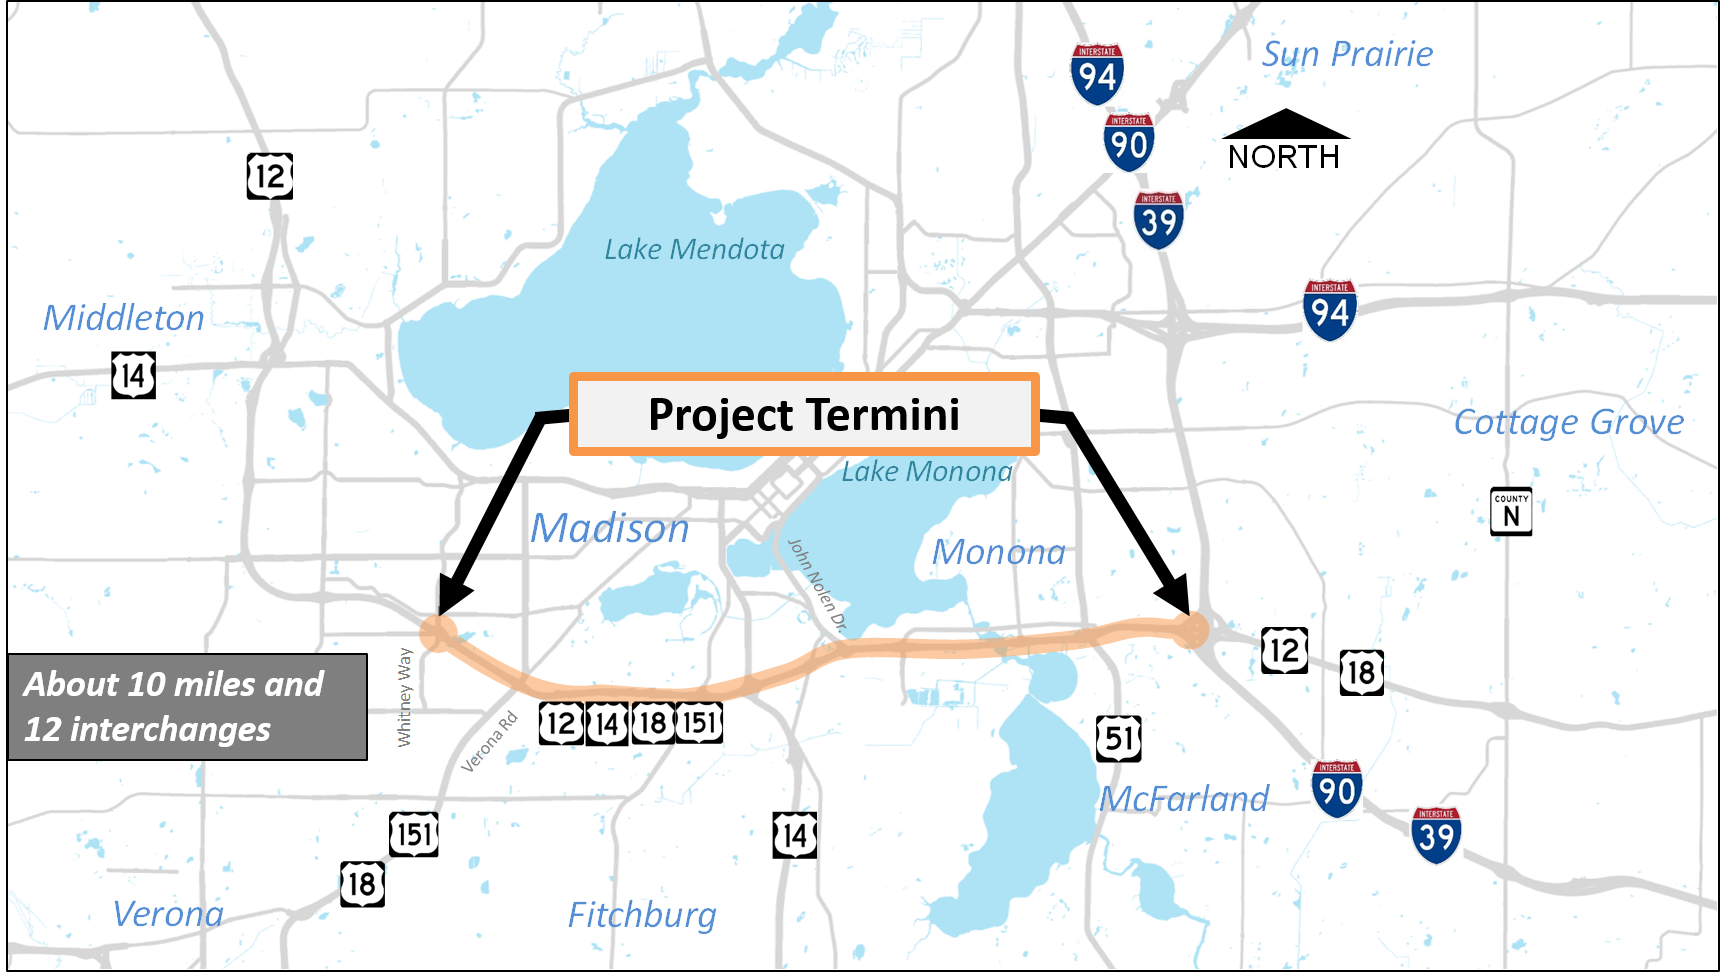 Image of map showing project start and end points